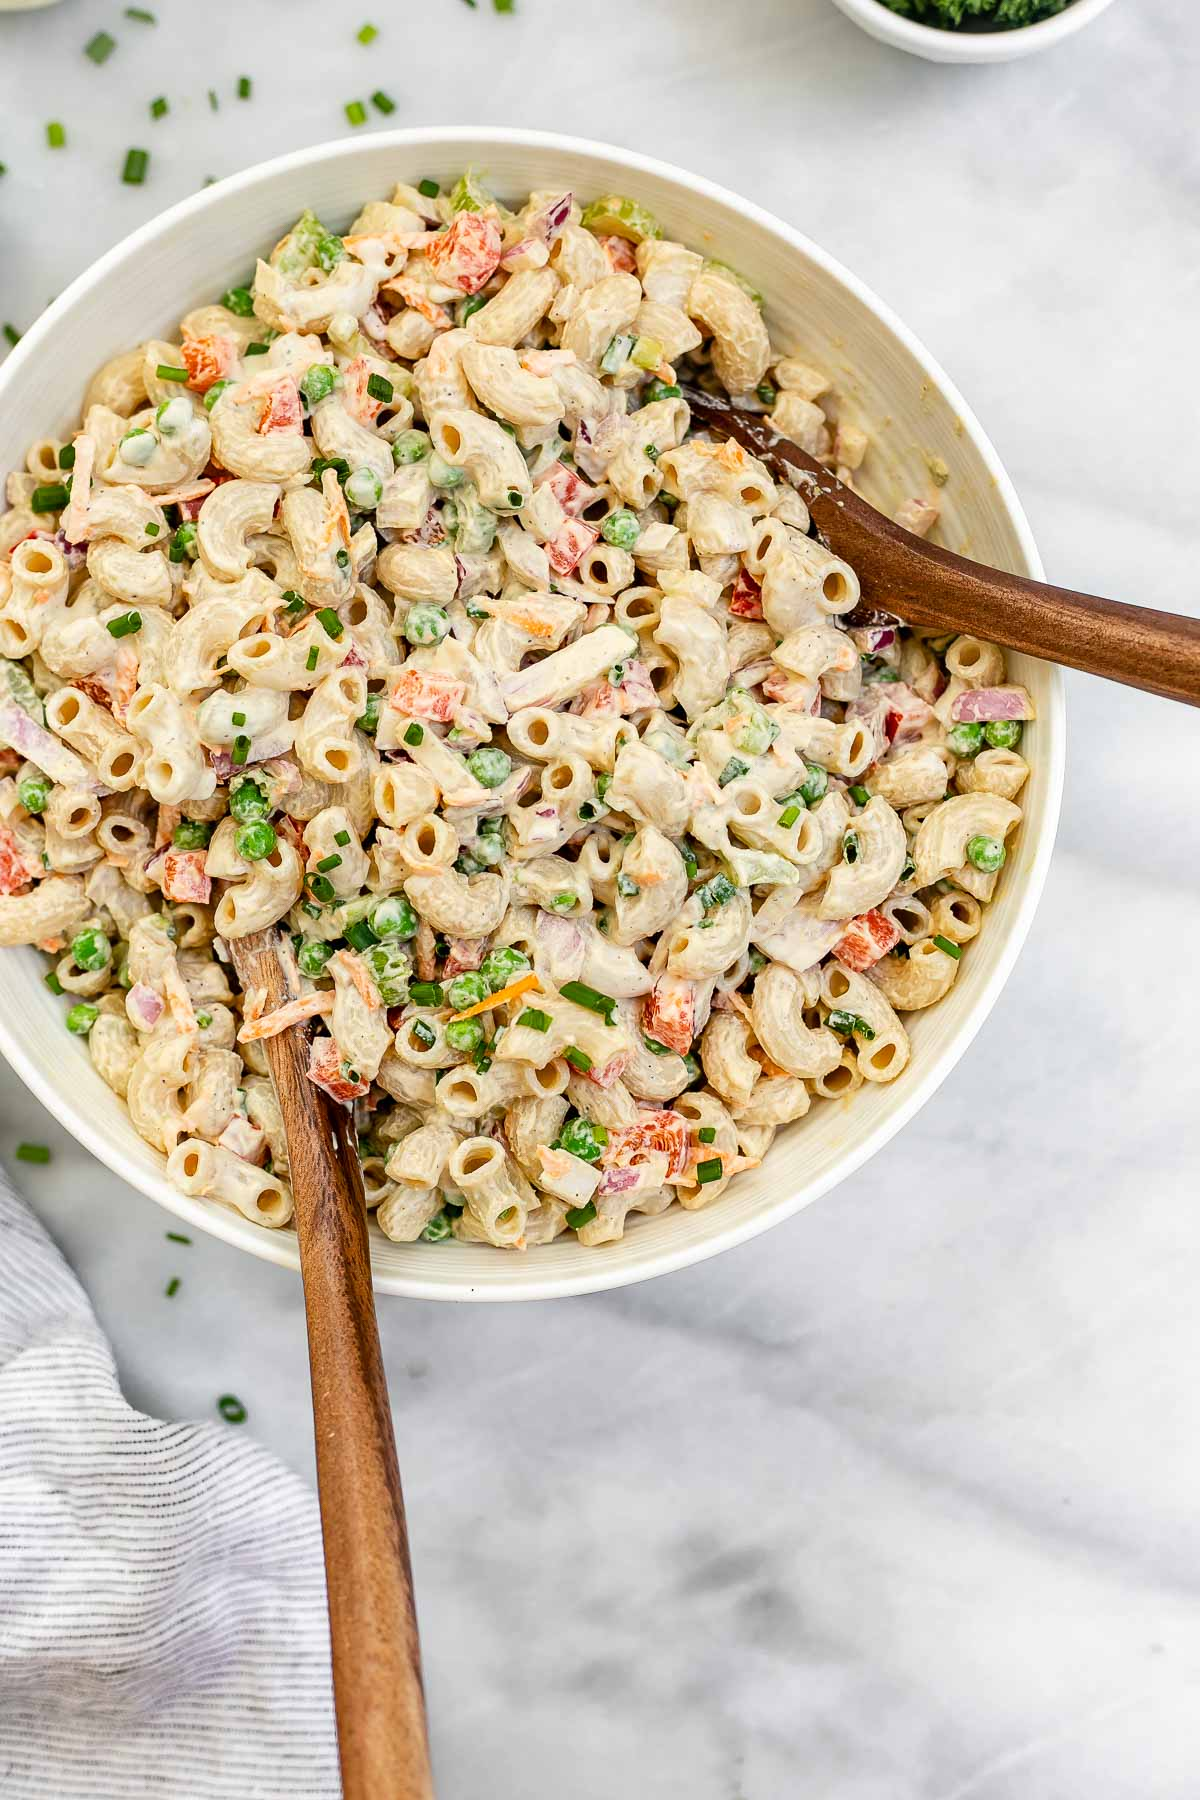 Vegan macaroni salad with two wooden spoons on the side.